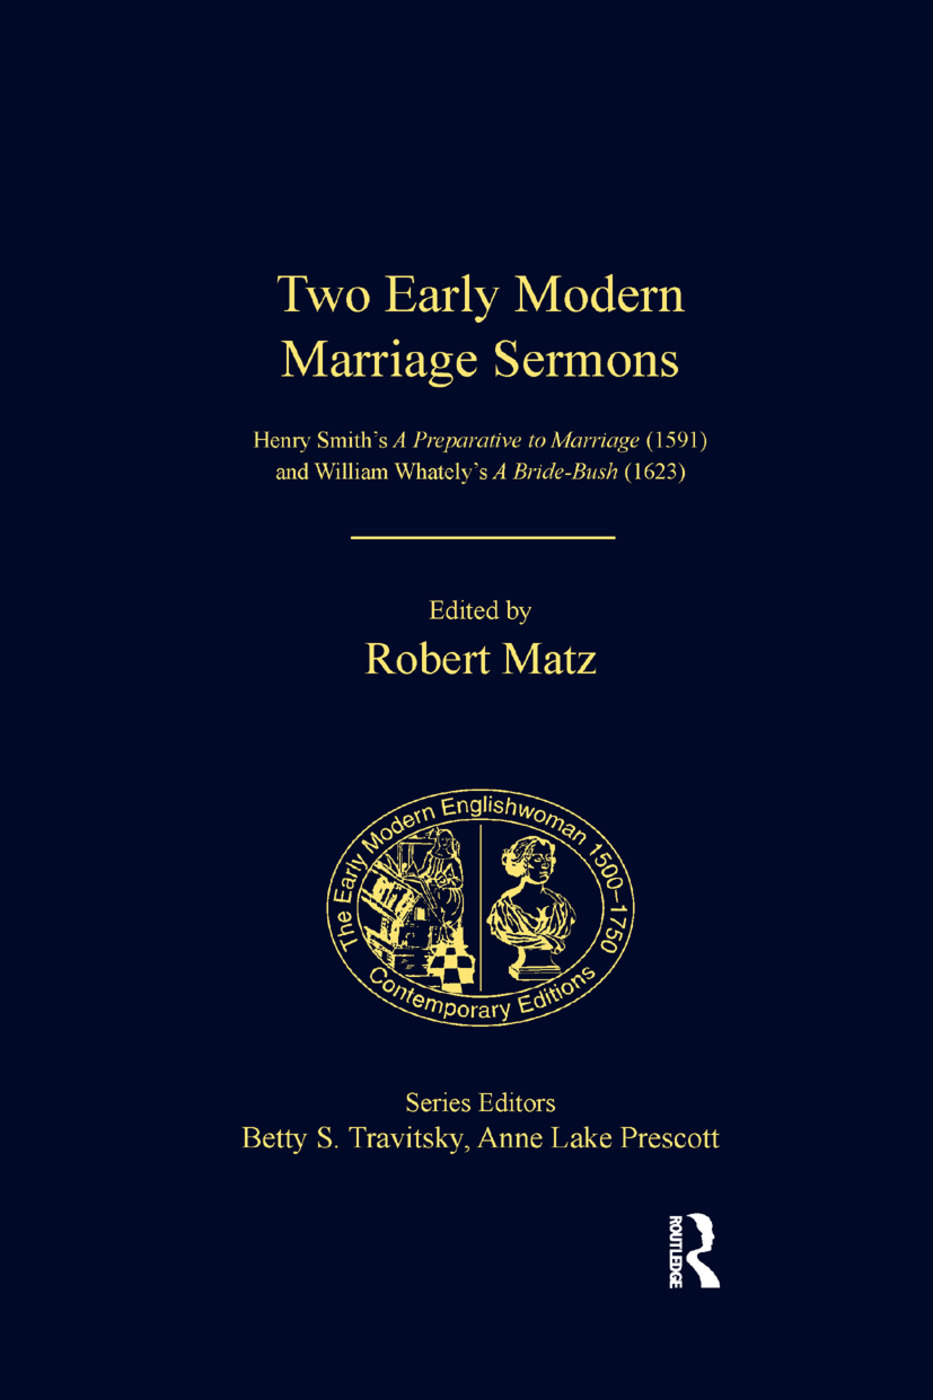 Two Early Modern Marriage Sermons: Henry Smith's A Preparative to Marriage (1591) and William Whately's A Bride-Bush (1623) book cover